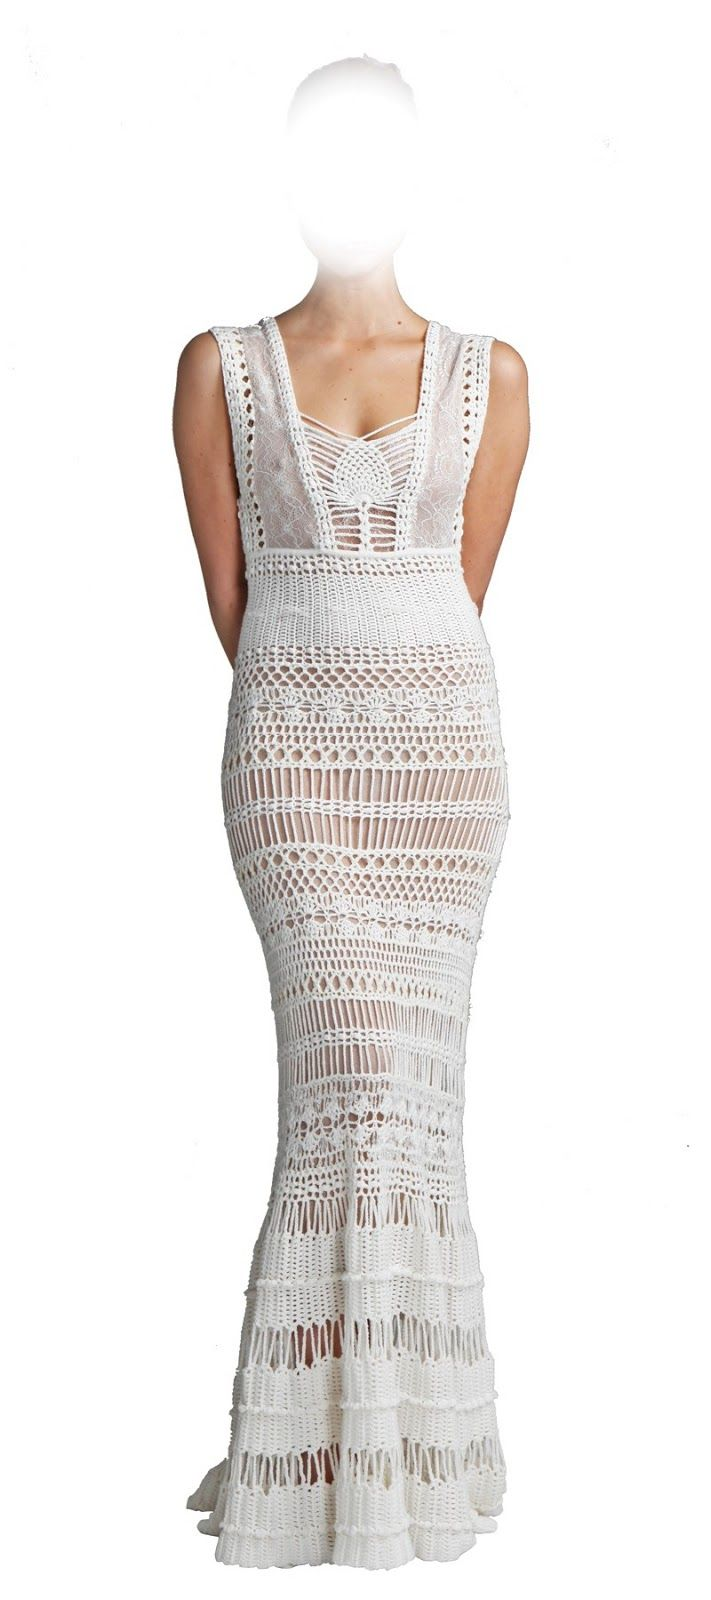 Go-Go-Gorgeous Crochet Dress!